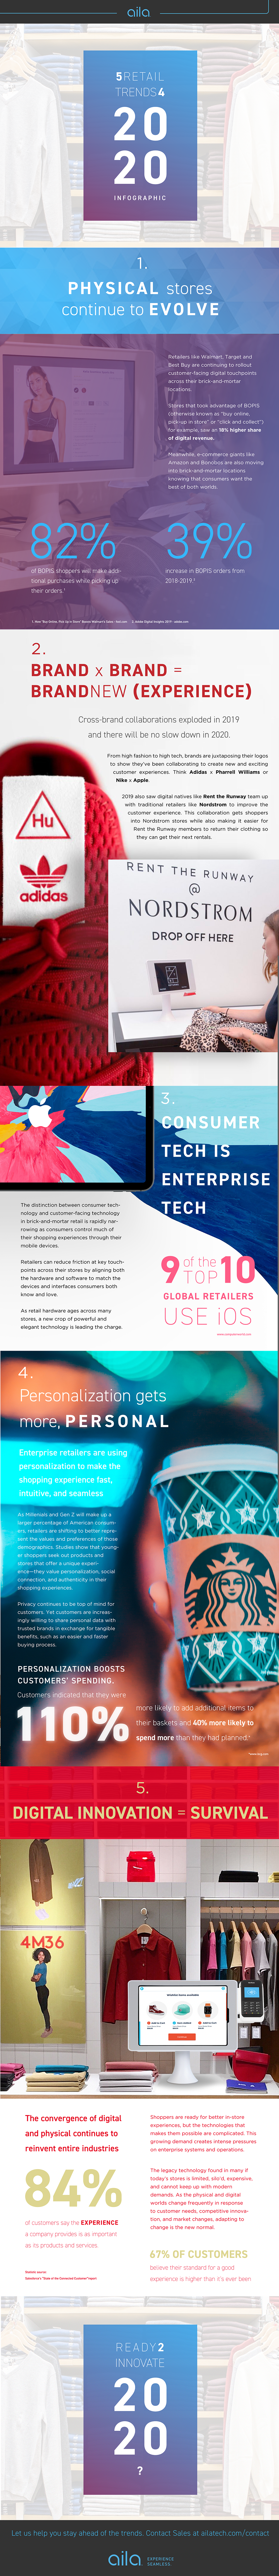 2020 retail trends infographic aila